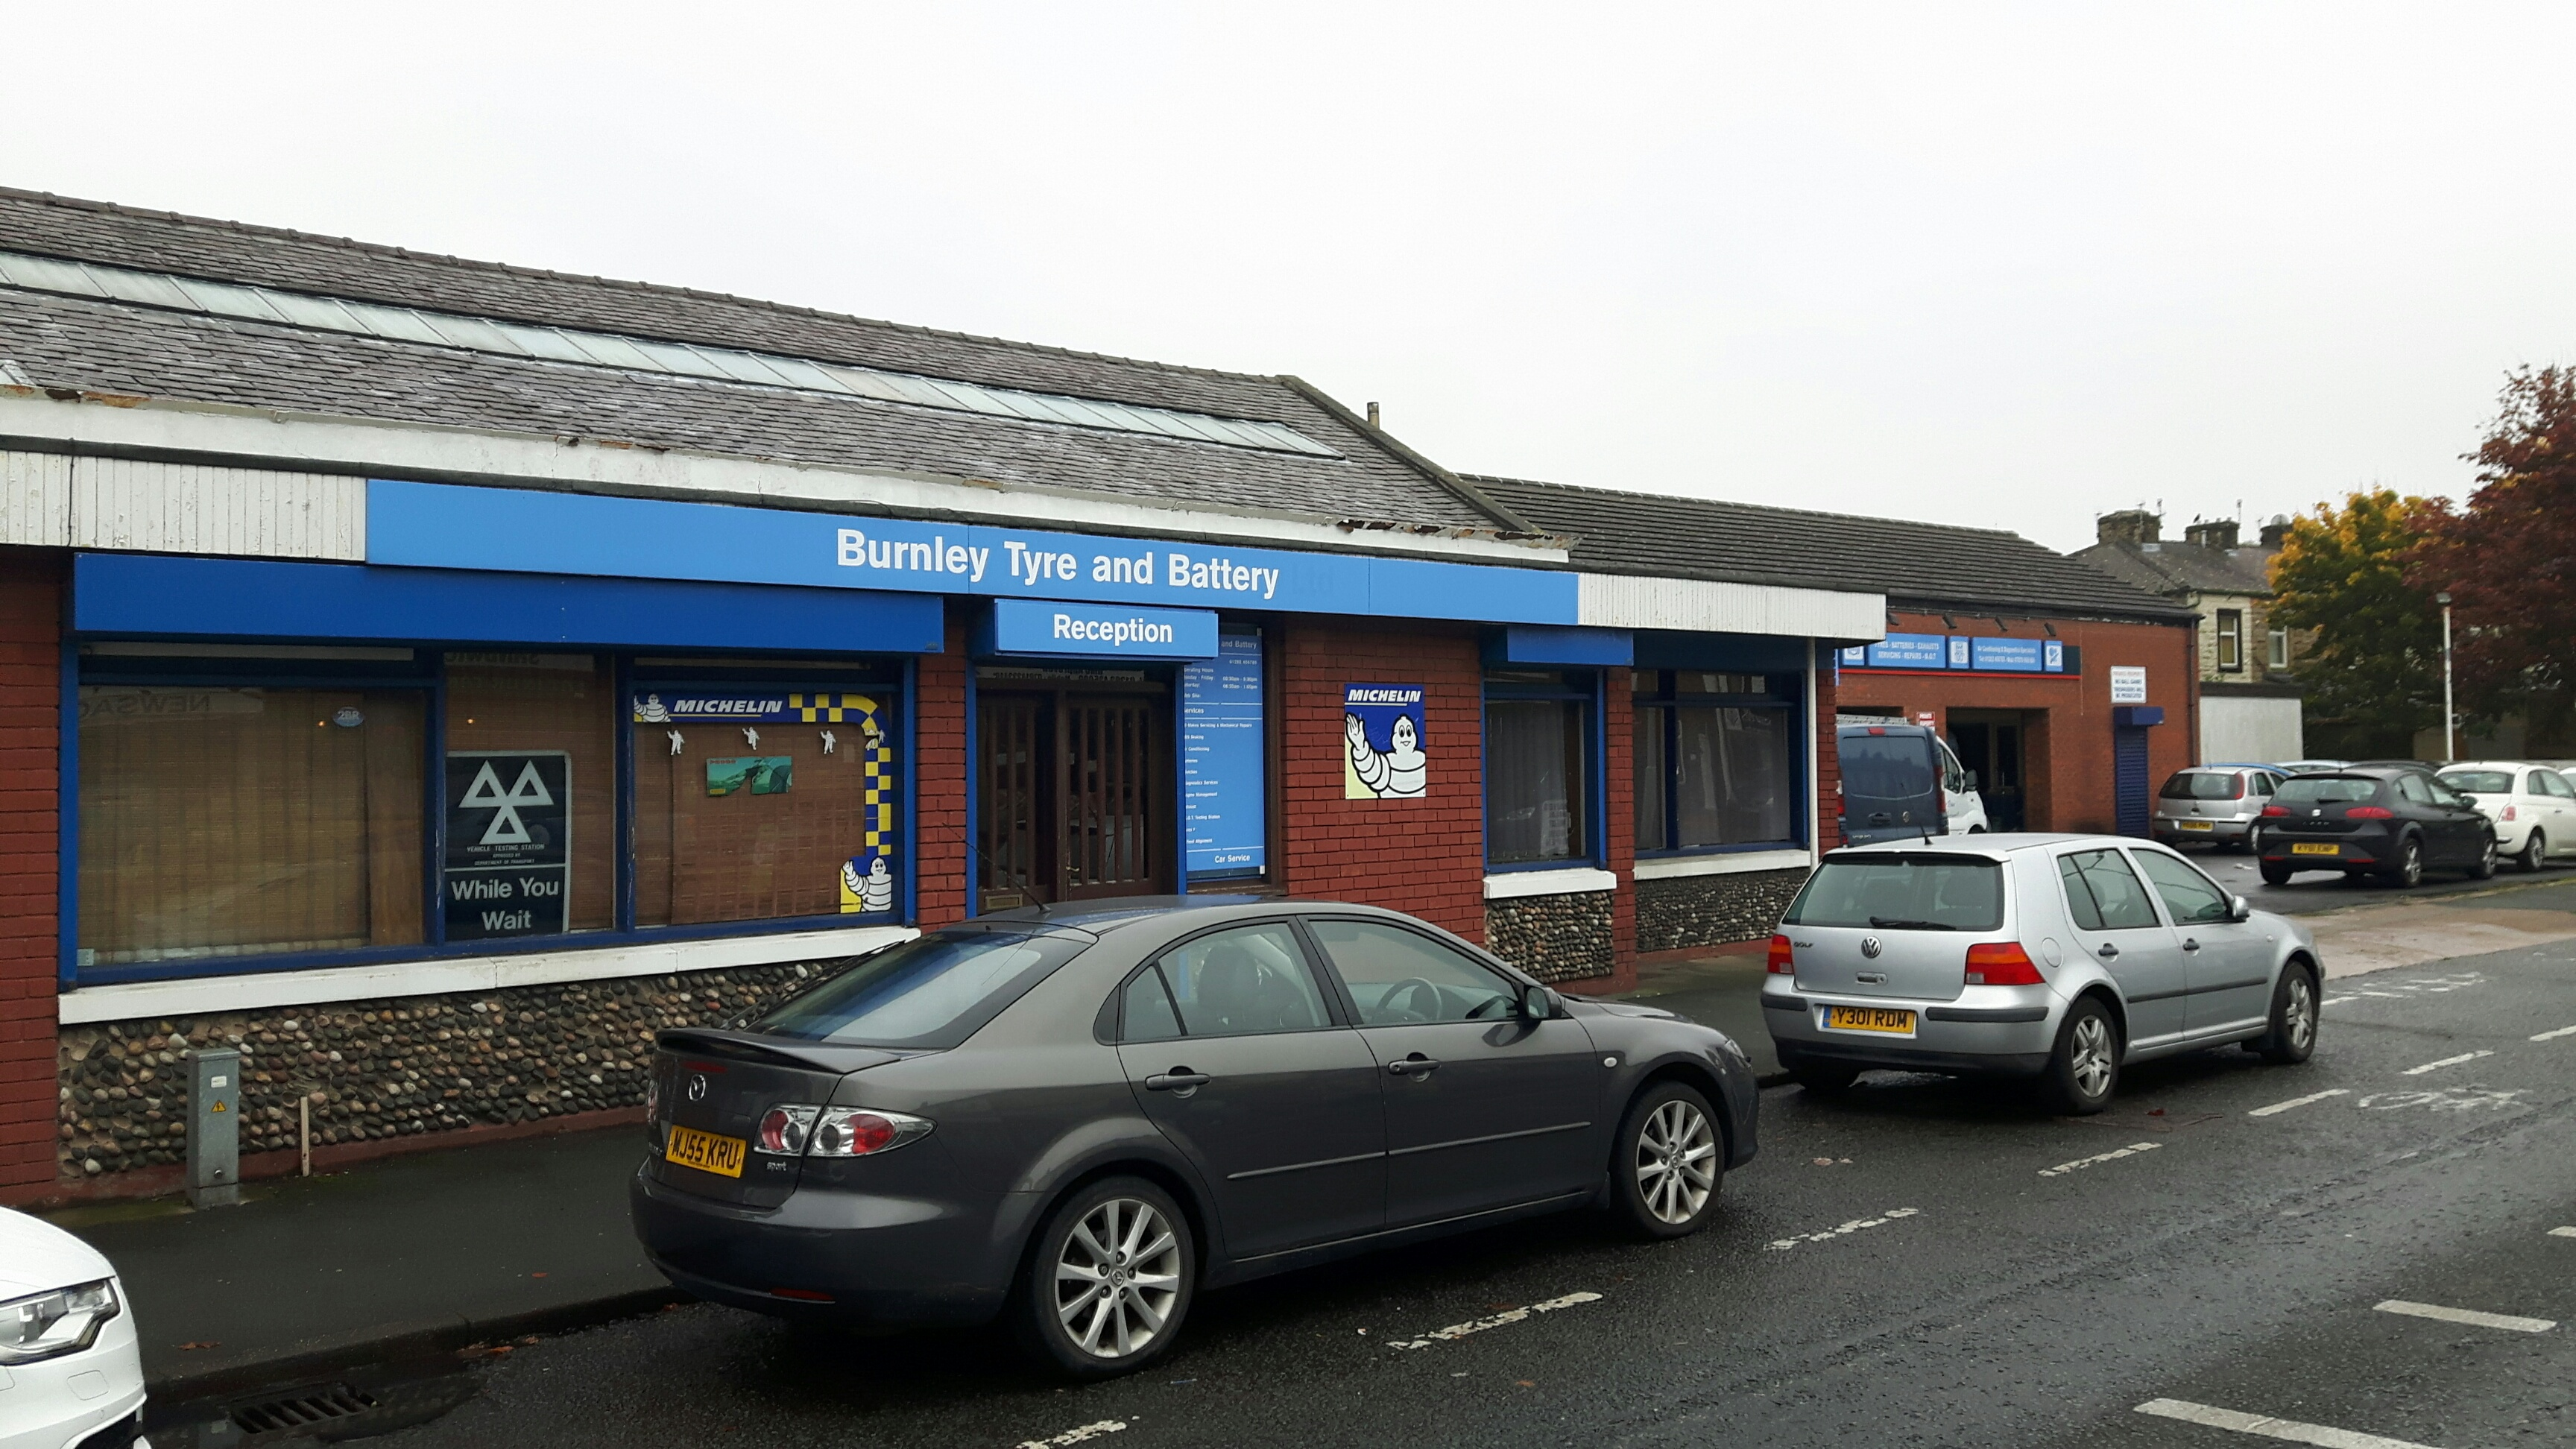 Burnley Tyre & Battery